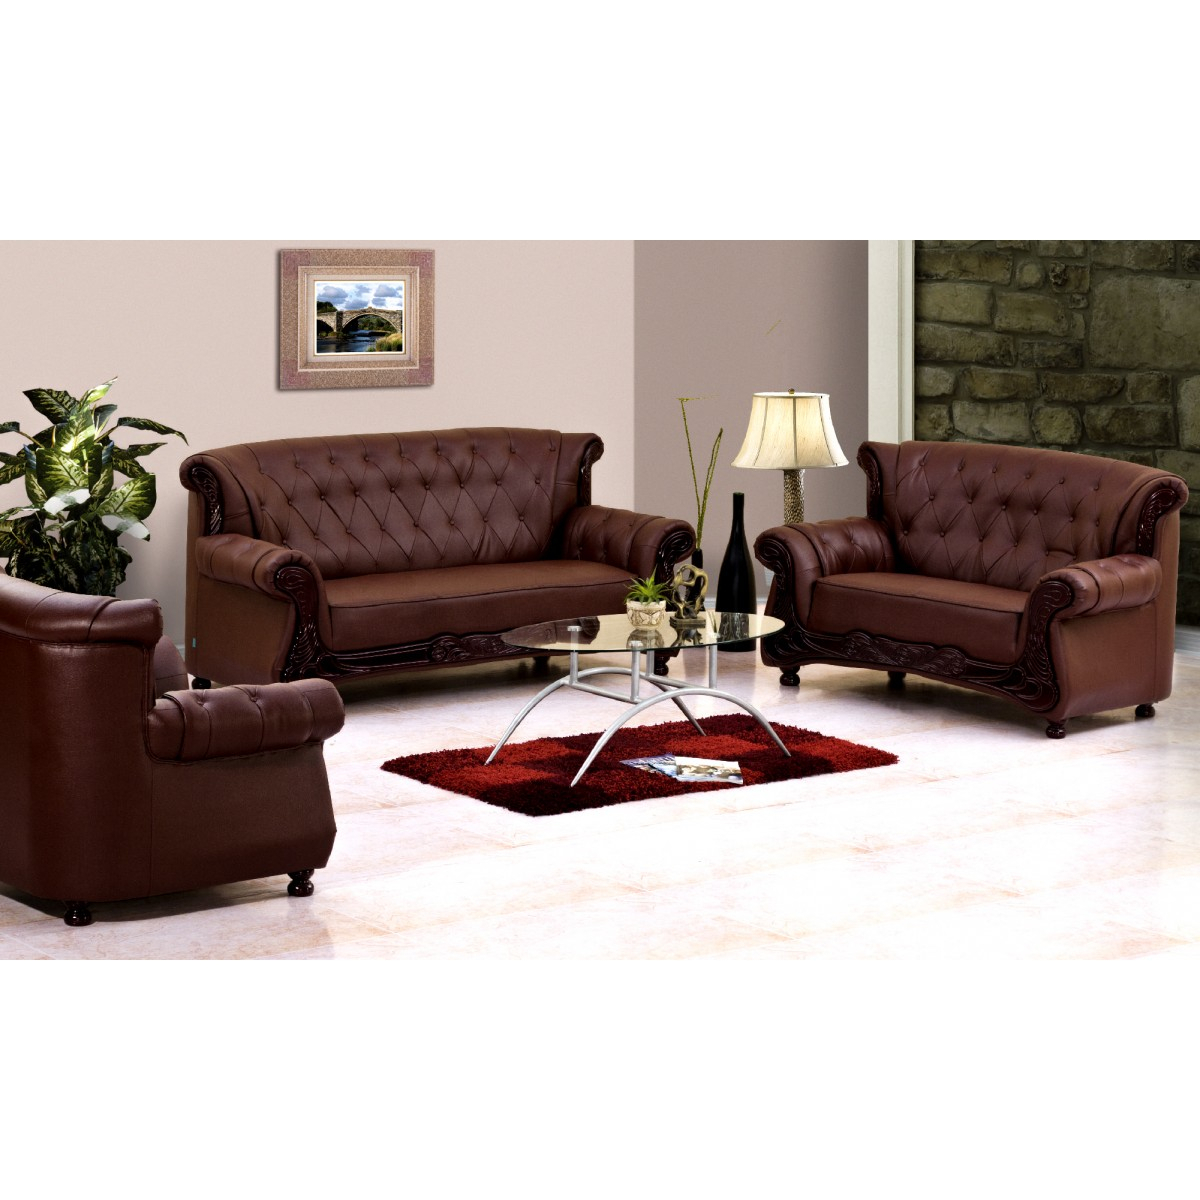 Grace Sofa (3 + 2 + 1 Seater) | Damro Intended For Grace Sofa Chairs (Photo 3 of 20)